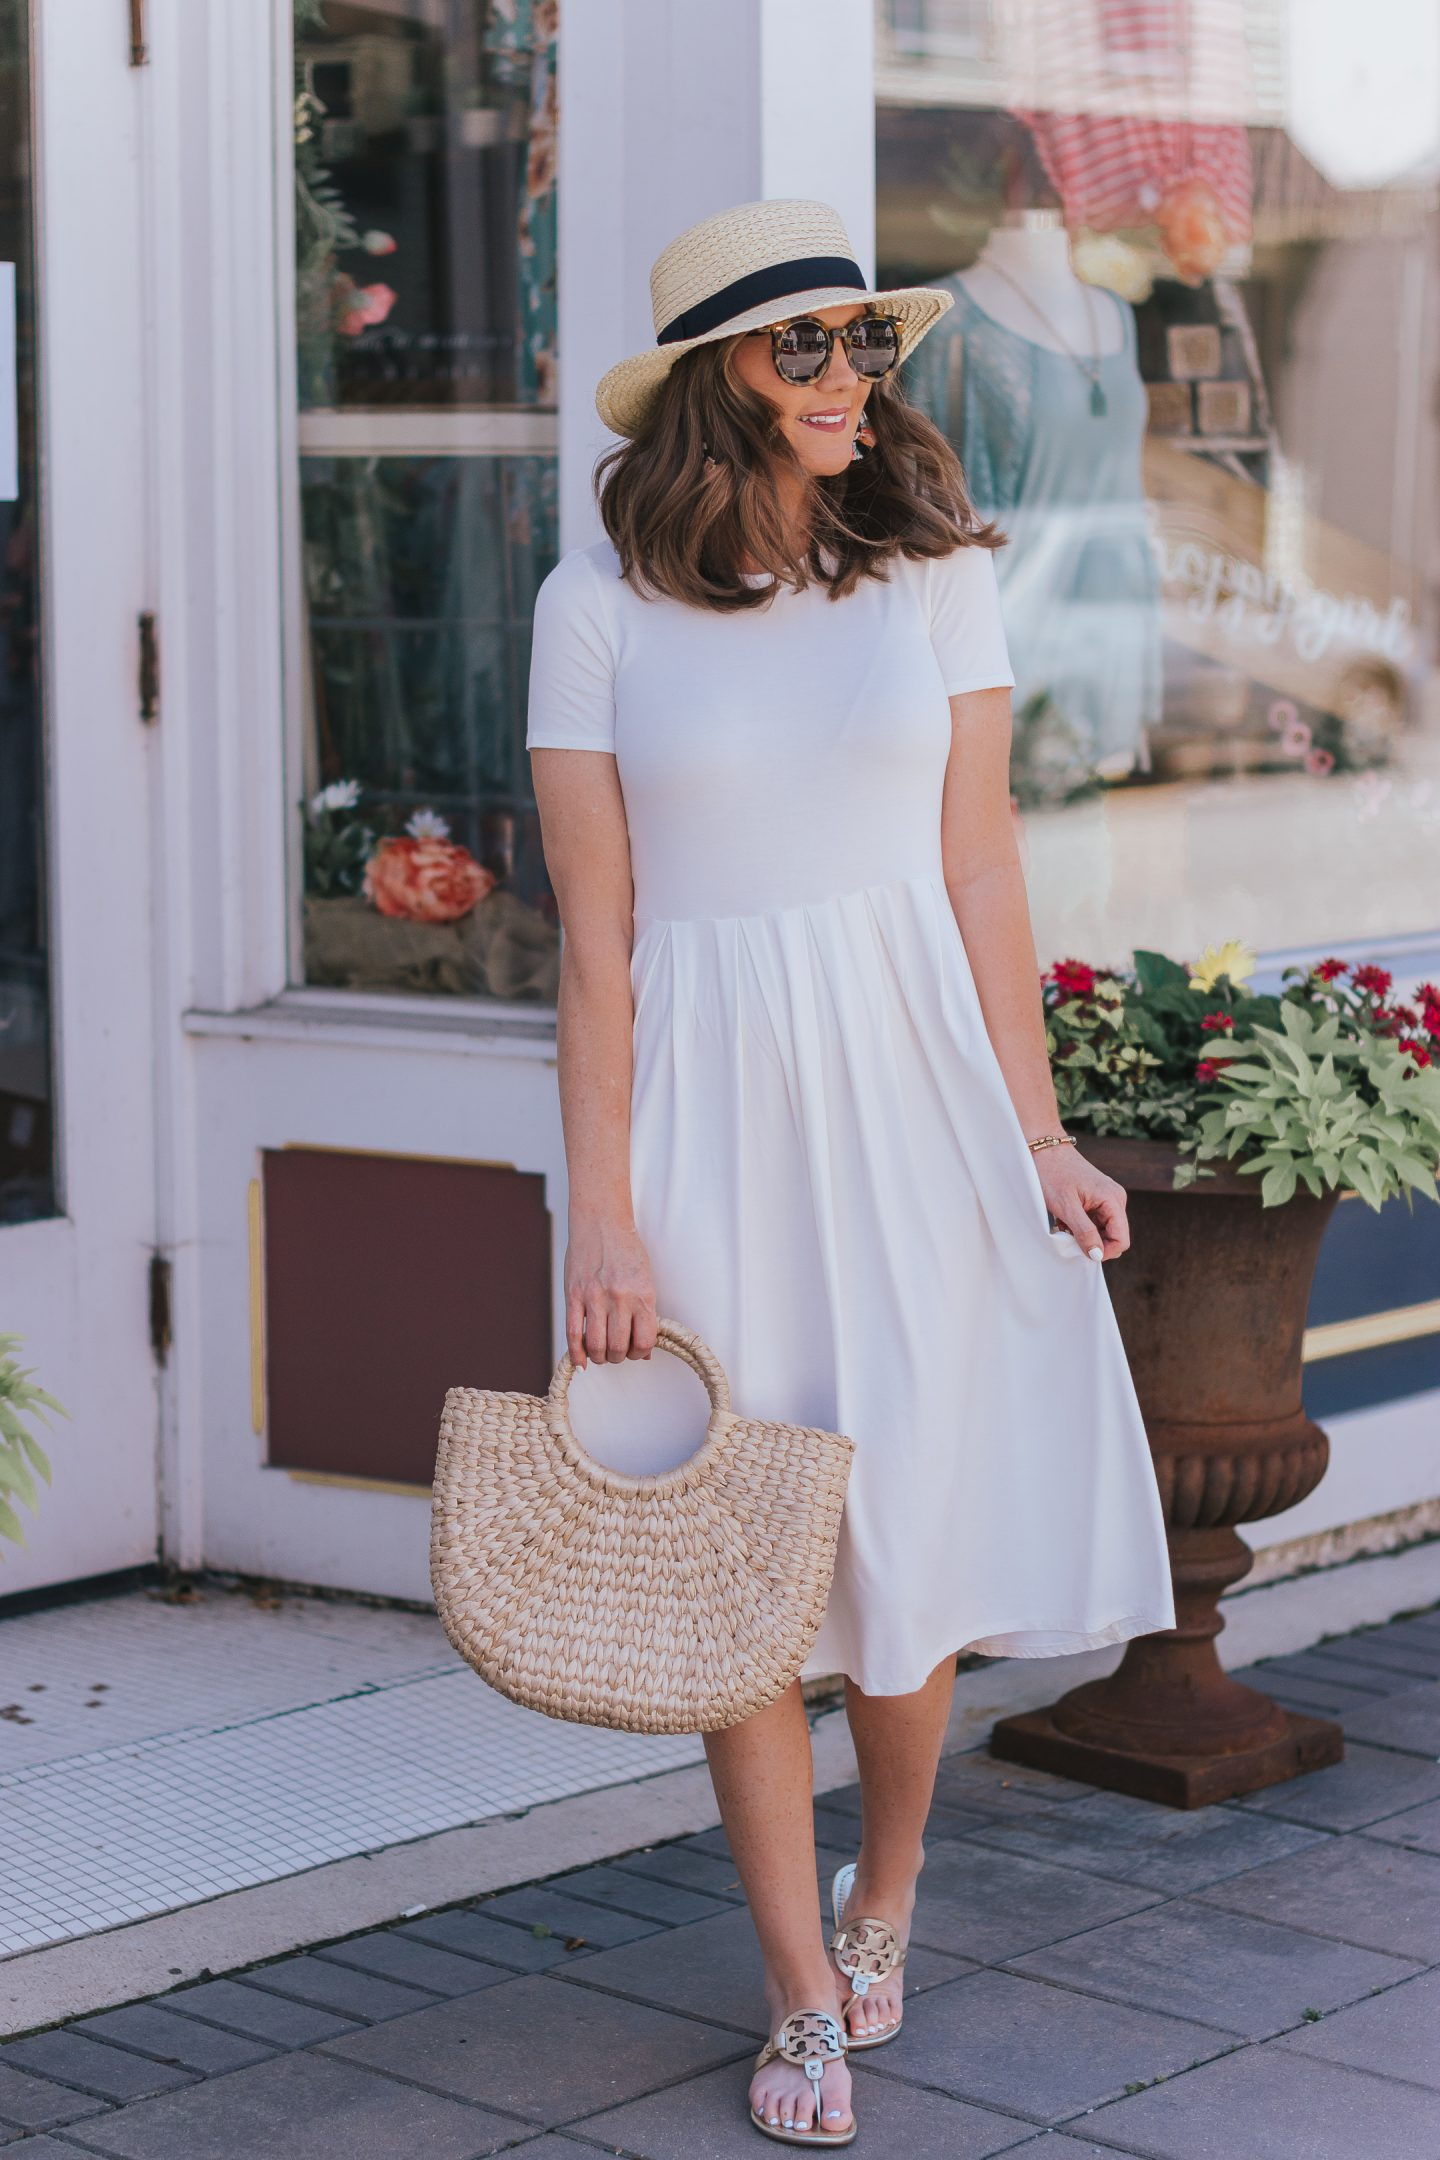 candid co update, midway point, my journey to straighter and whiter teeth, affordable teeth aligners, white midi dress panama hat outfit, what to wear to a summer party